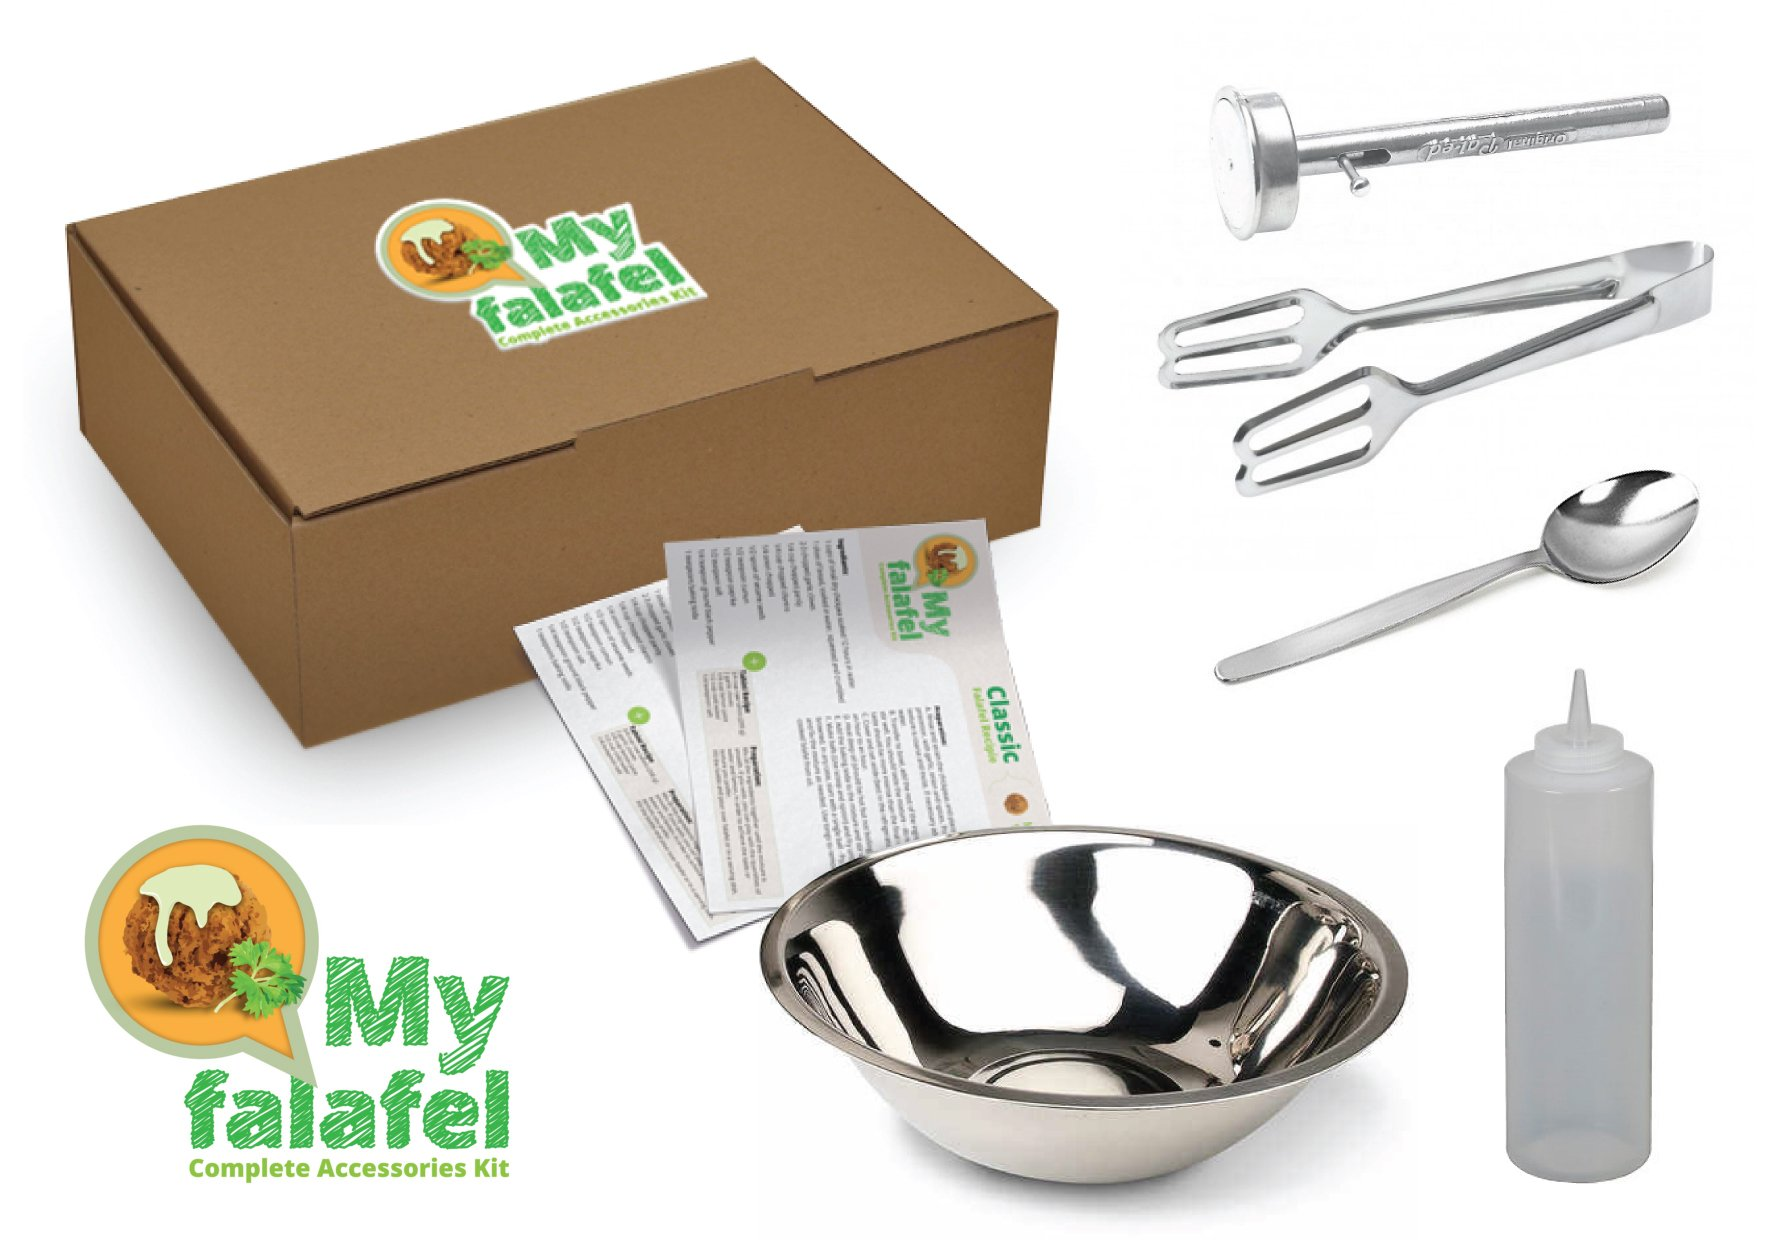 Comes with what you need to make Falafel